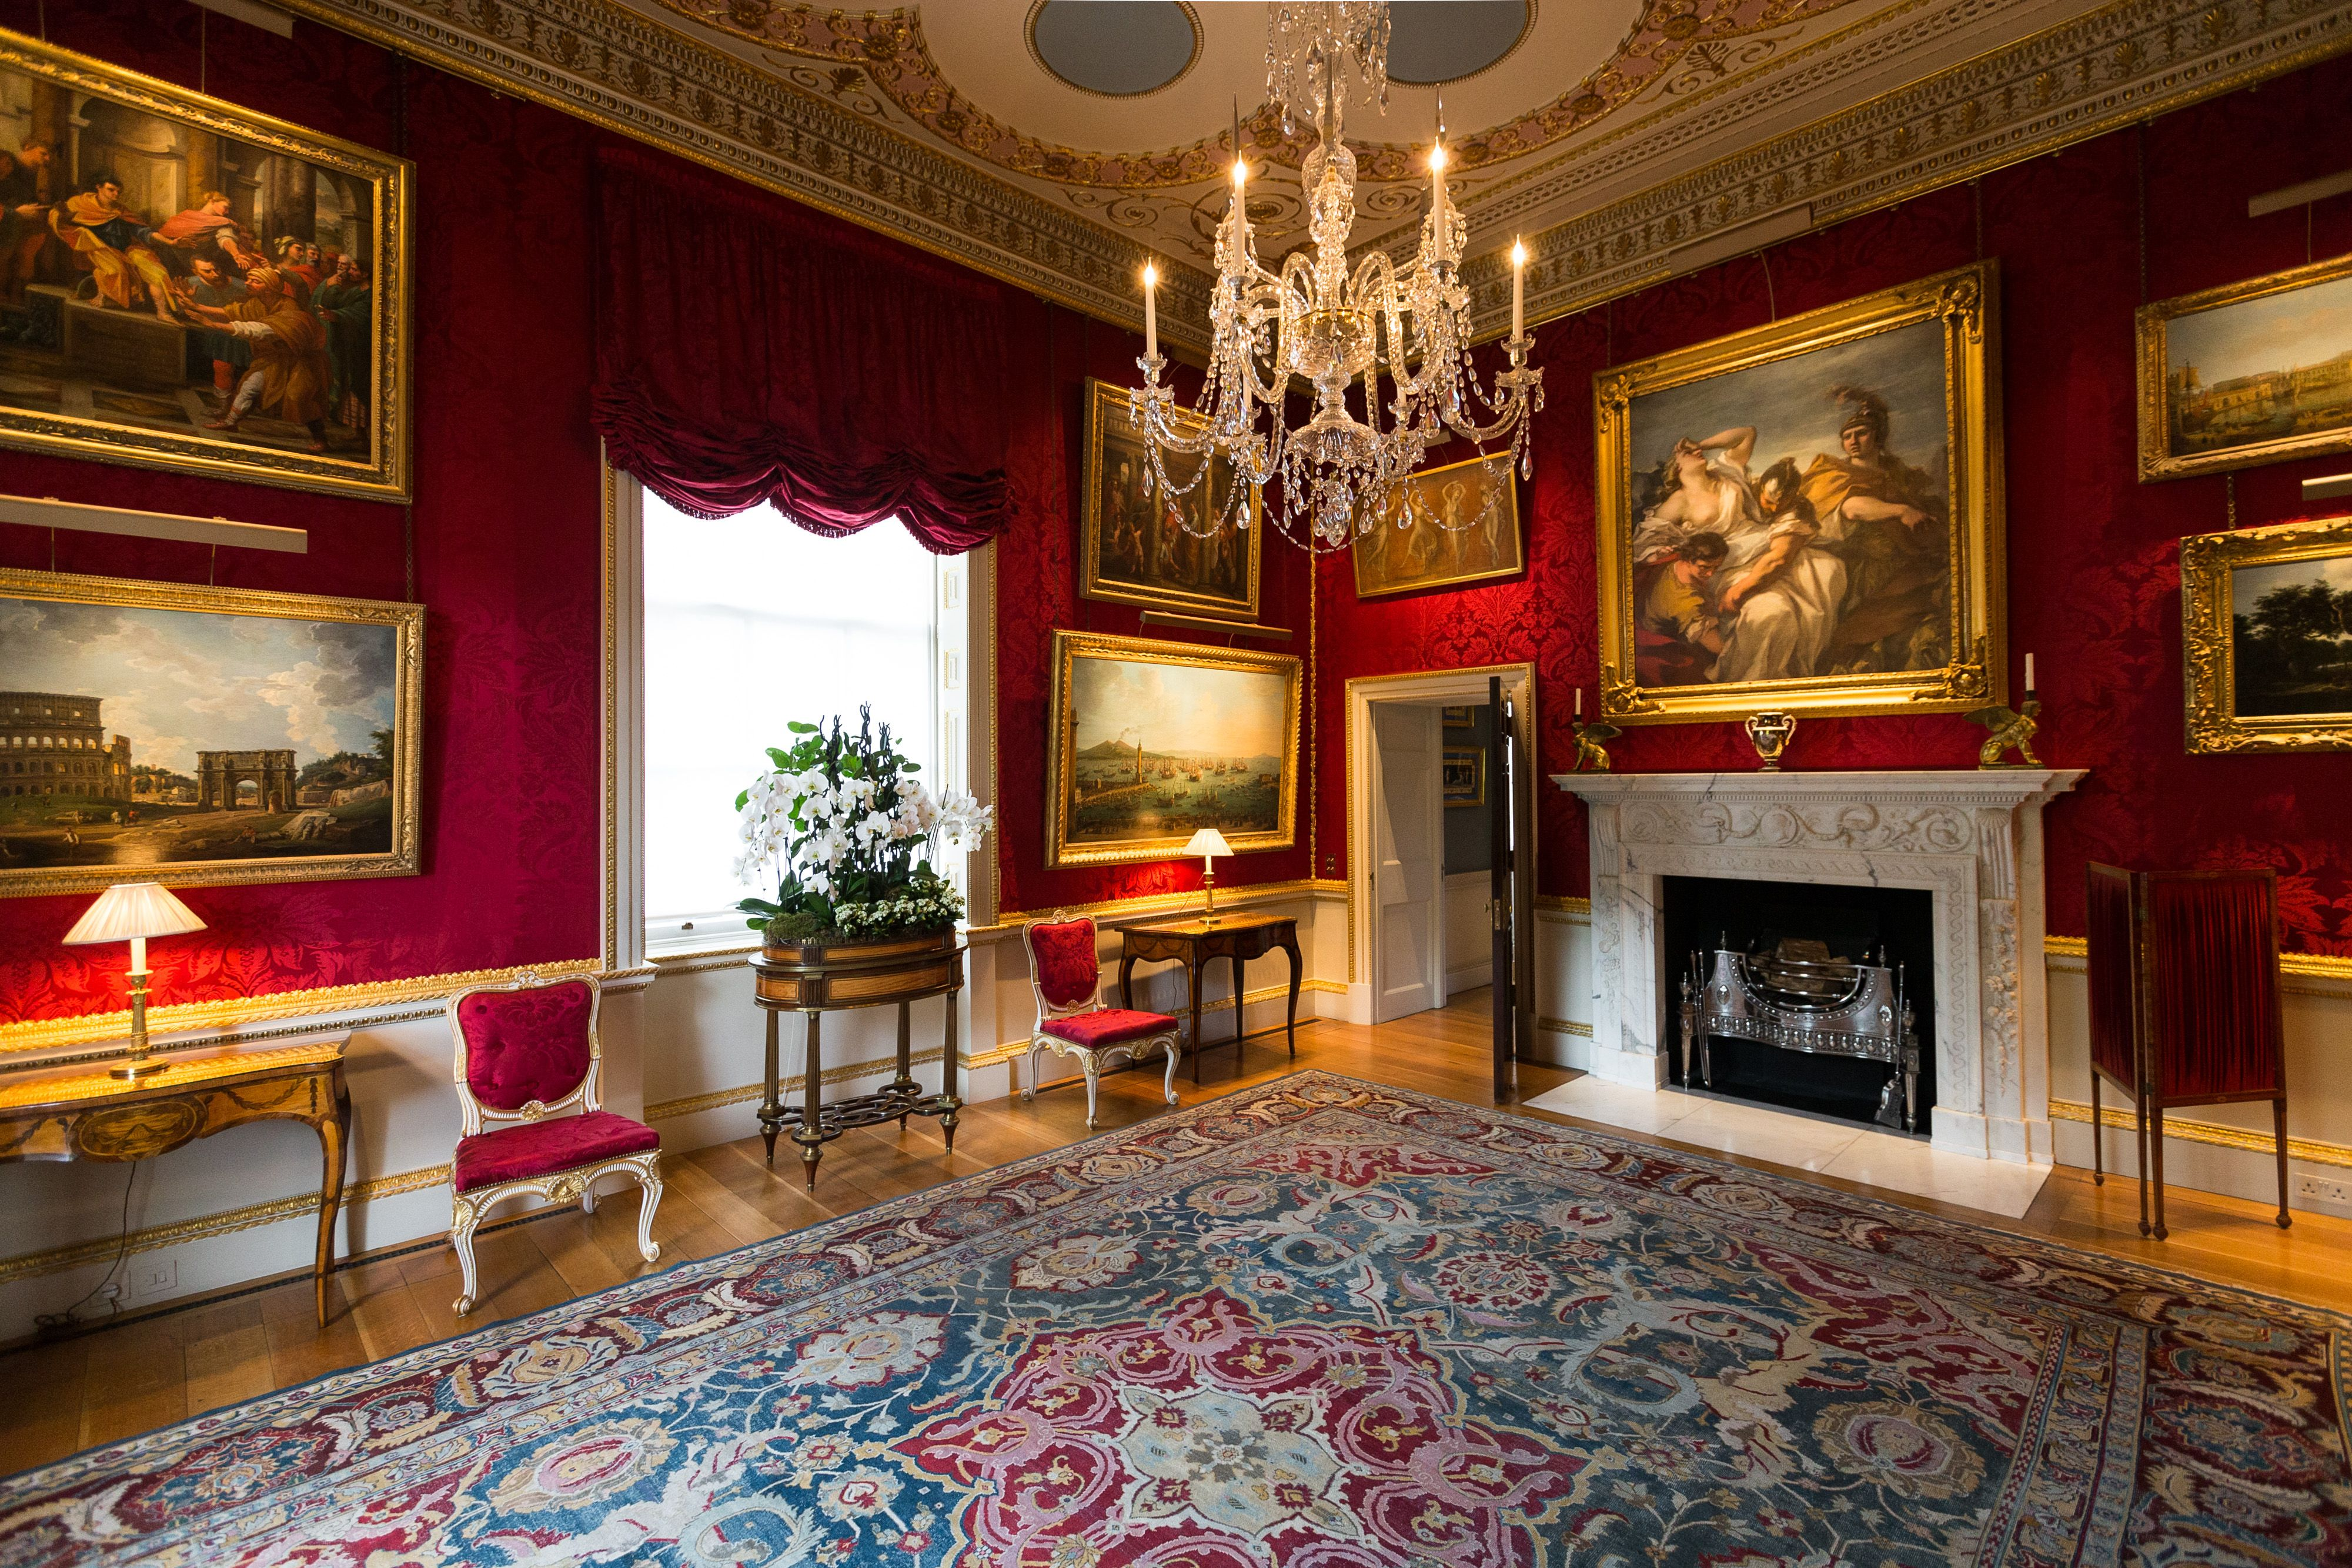 Interior Photography at Spencer House in Piccadilly, London by Cameo Photography | Corporate Photography London, PR Photos, Corporate Event Photographer #corporate #interior  #london #corporatephotography 02084464477